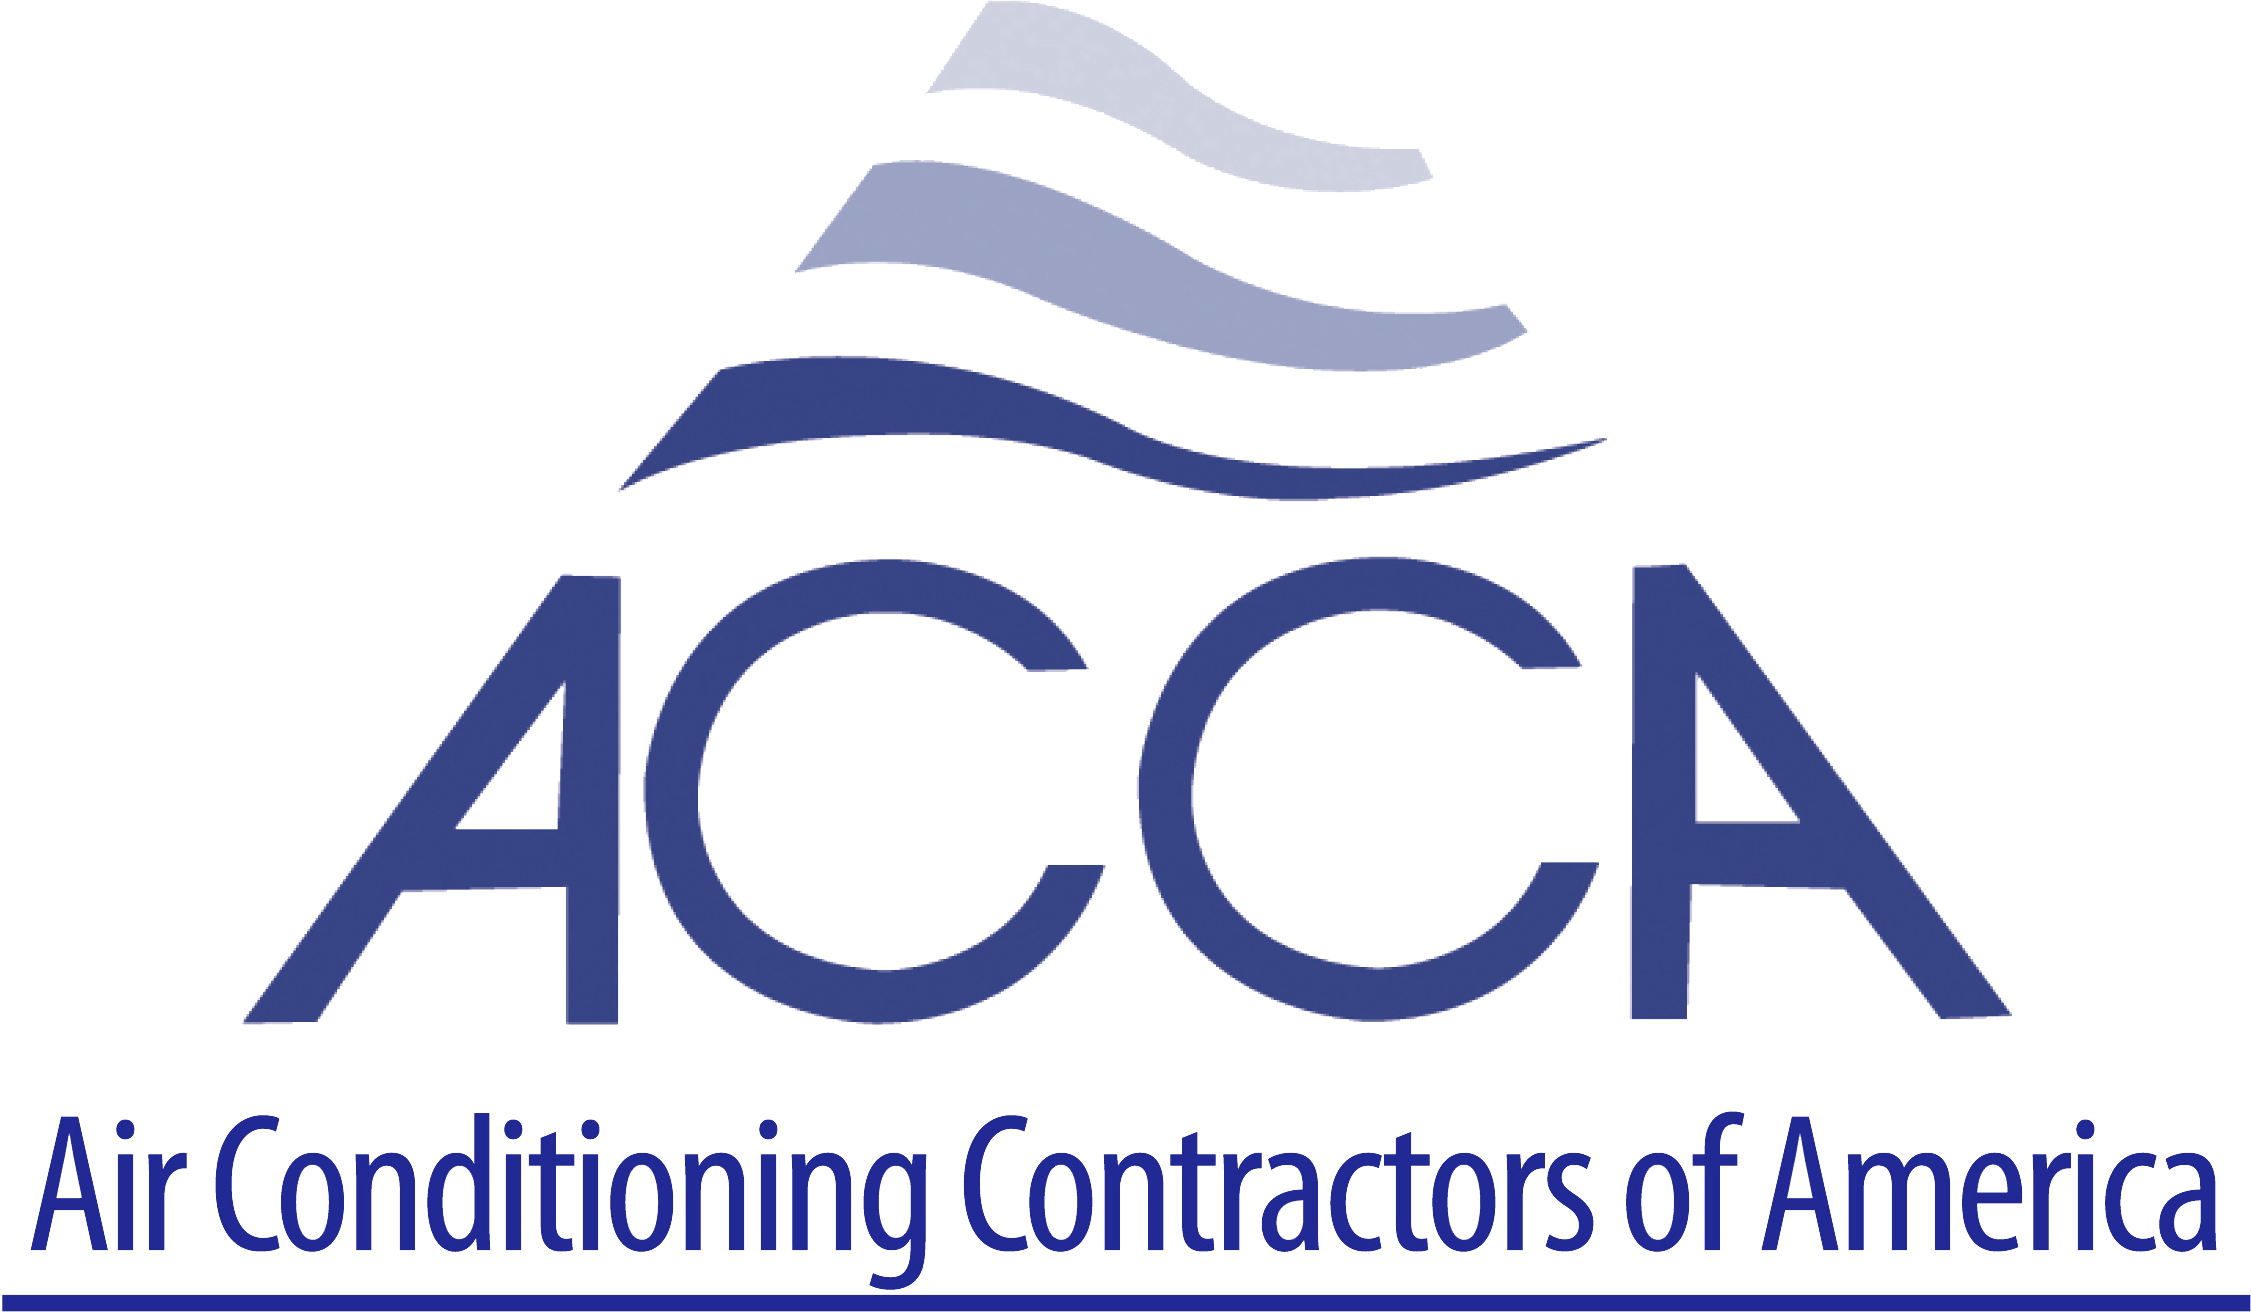 For Boiler replacement in Baxter IA, opt for an ACCA member.